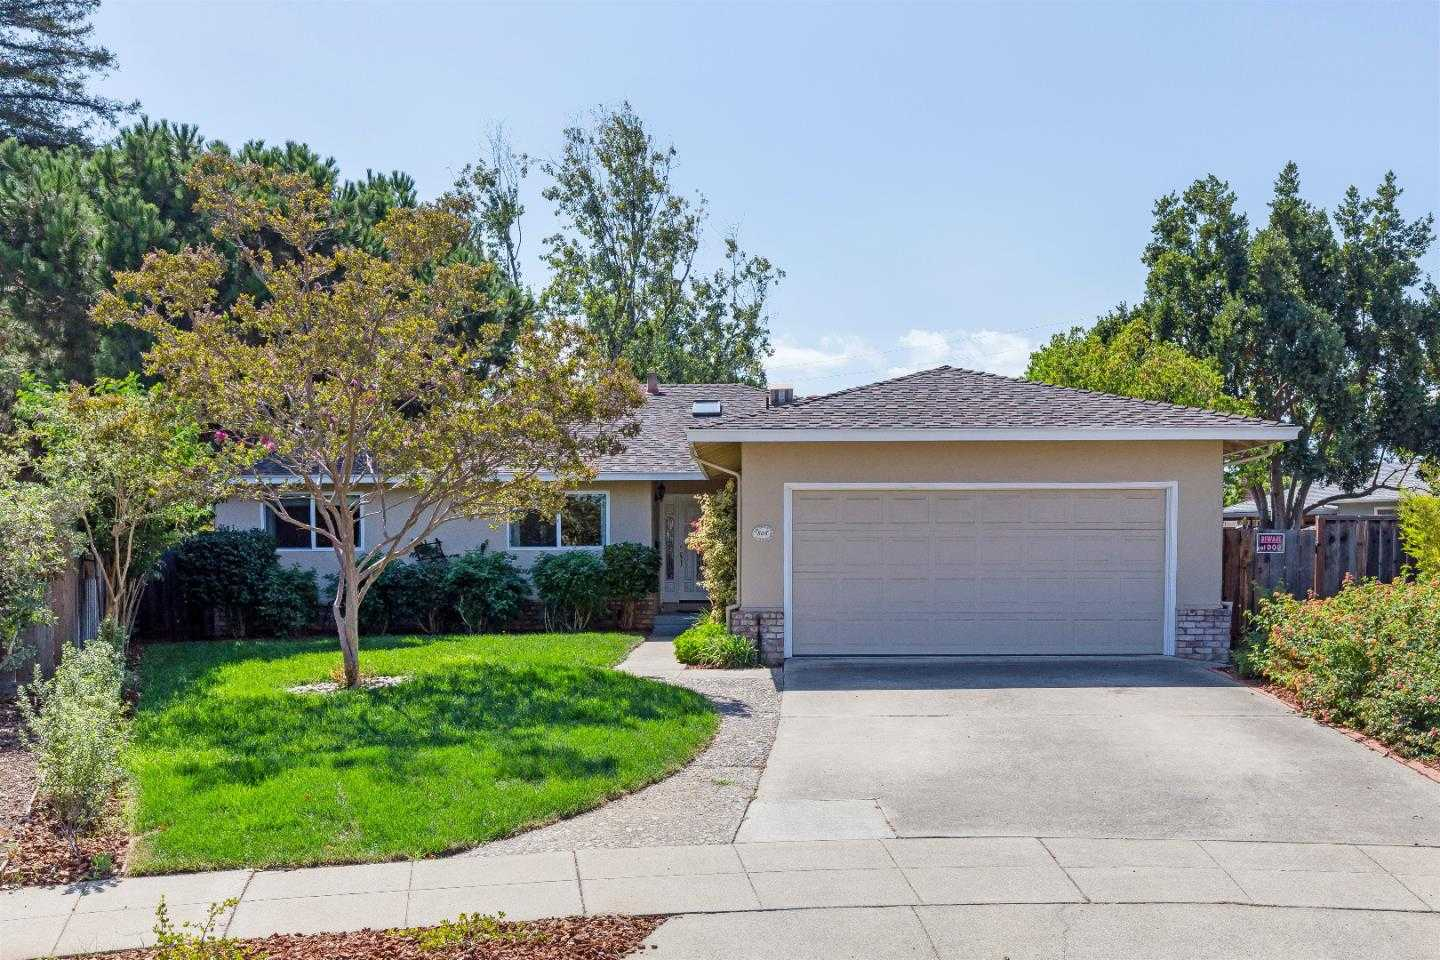 $1,998,000 - 3Br/4Ba -  for Sale in Sunnyvale